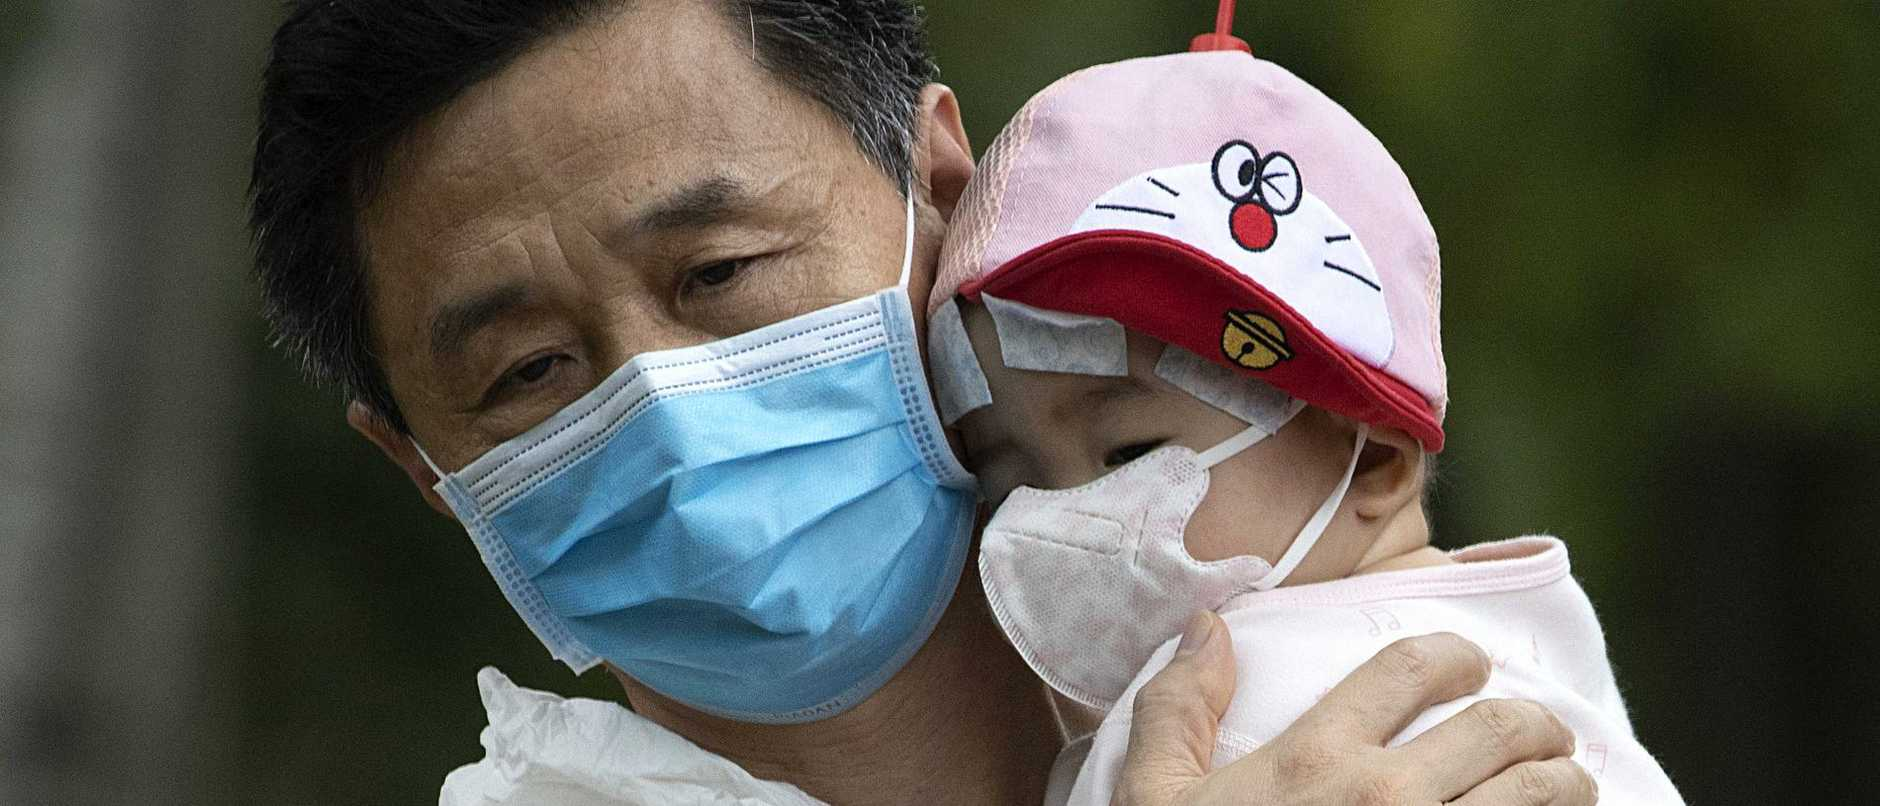 Months after the super power boasted it had defeated the virus it has been forced to lift emergency warning levels in Beijing under fears of a 'mutant strain'.